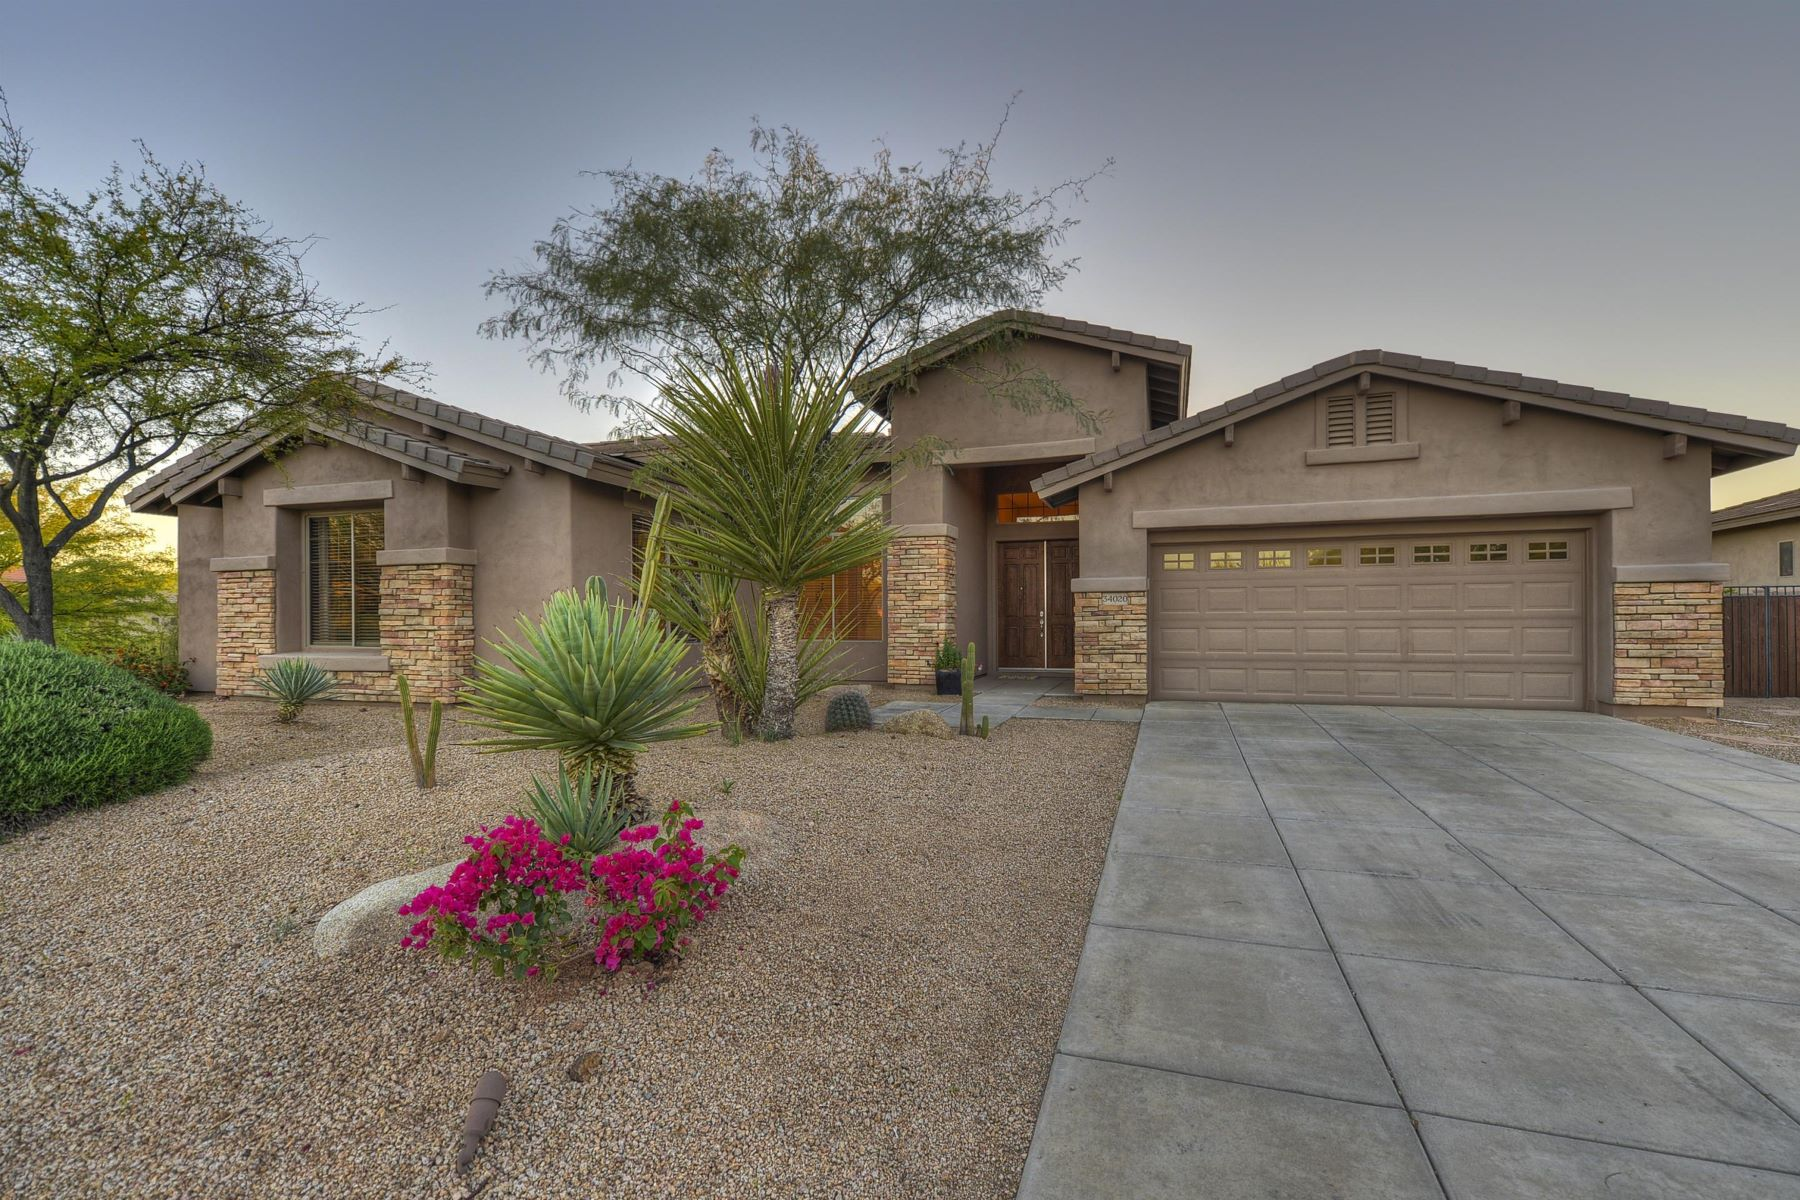 Single Family Home for Rent at Fabulous single level home in Los Alisos 34020 N 59th Pl Scottsdale, Arizona 85266 United States